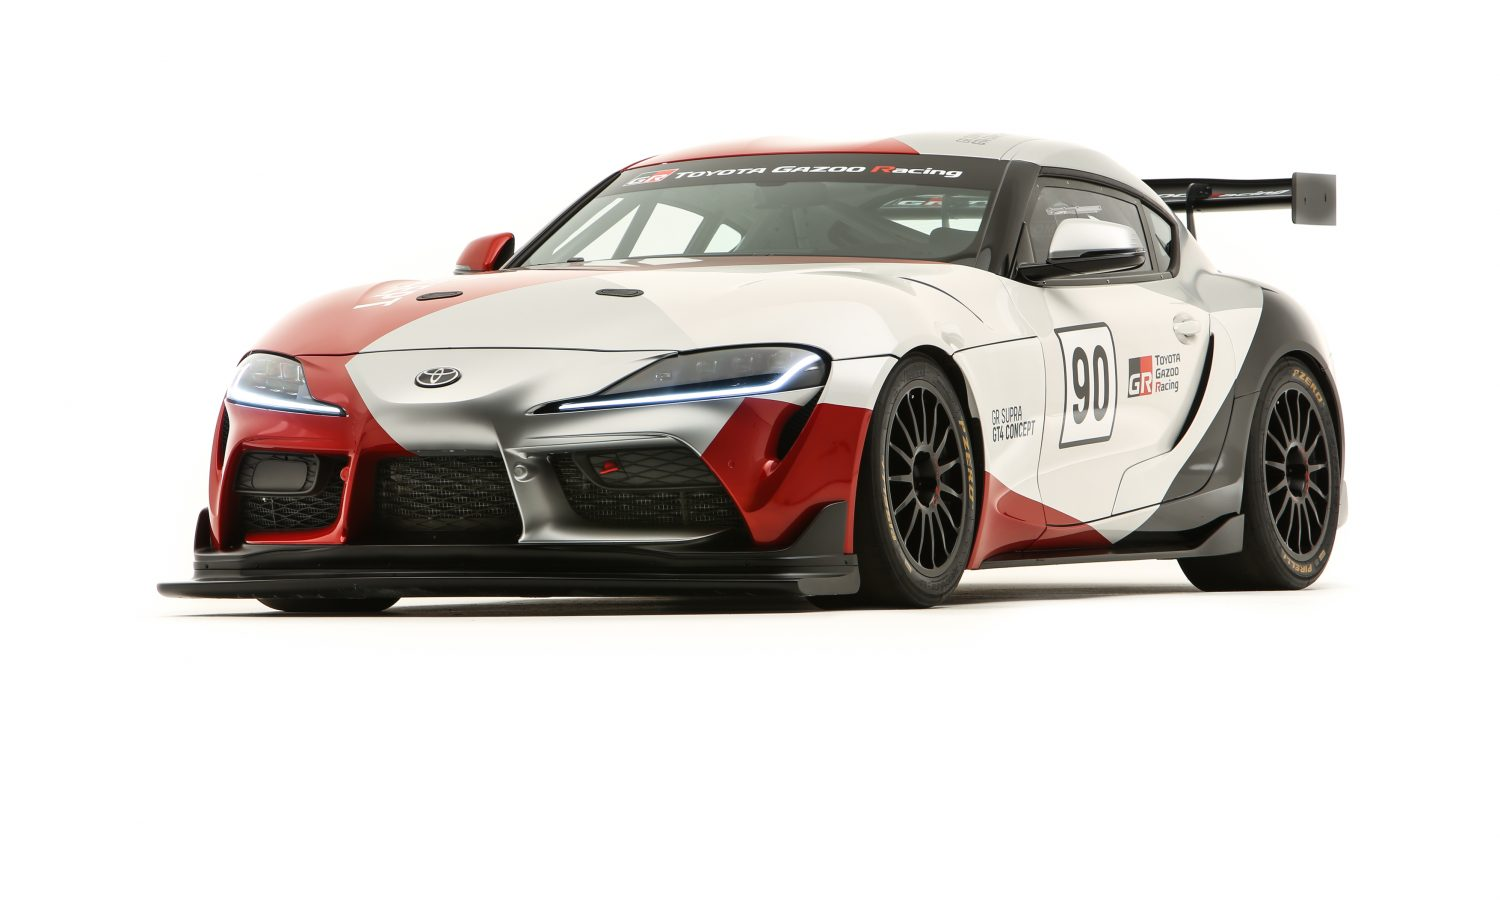 The Toyota GR Supra GT4 Gears Up For Competition